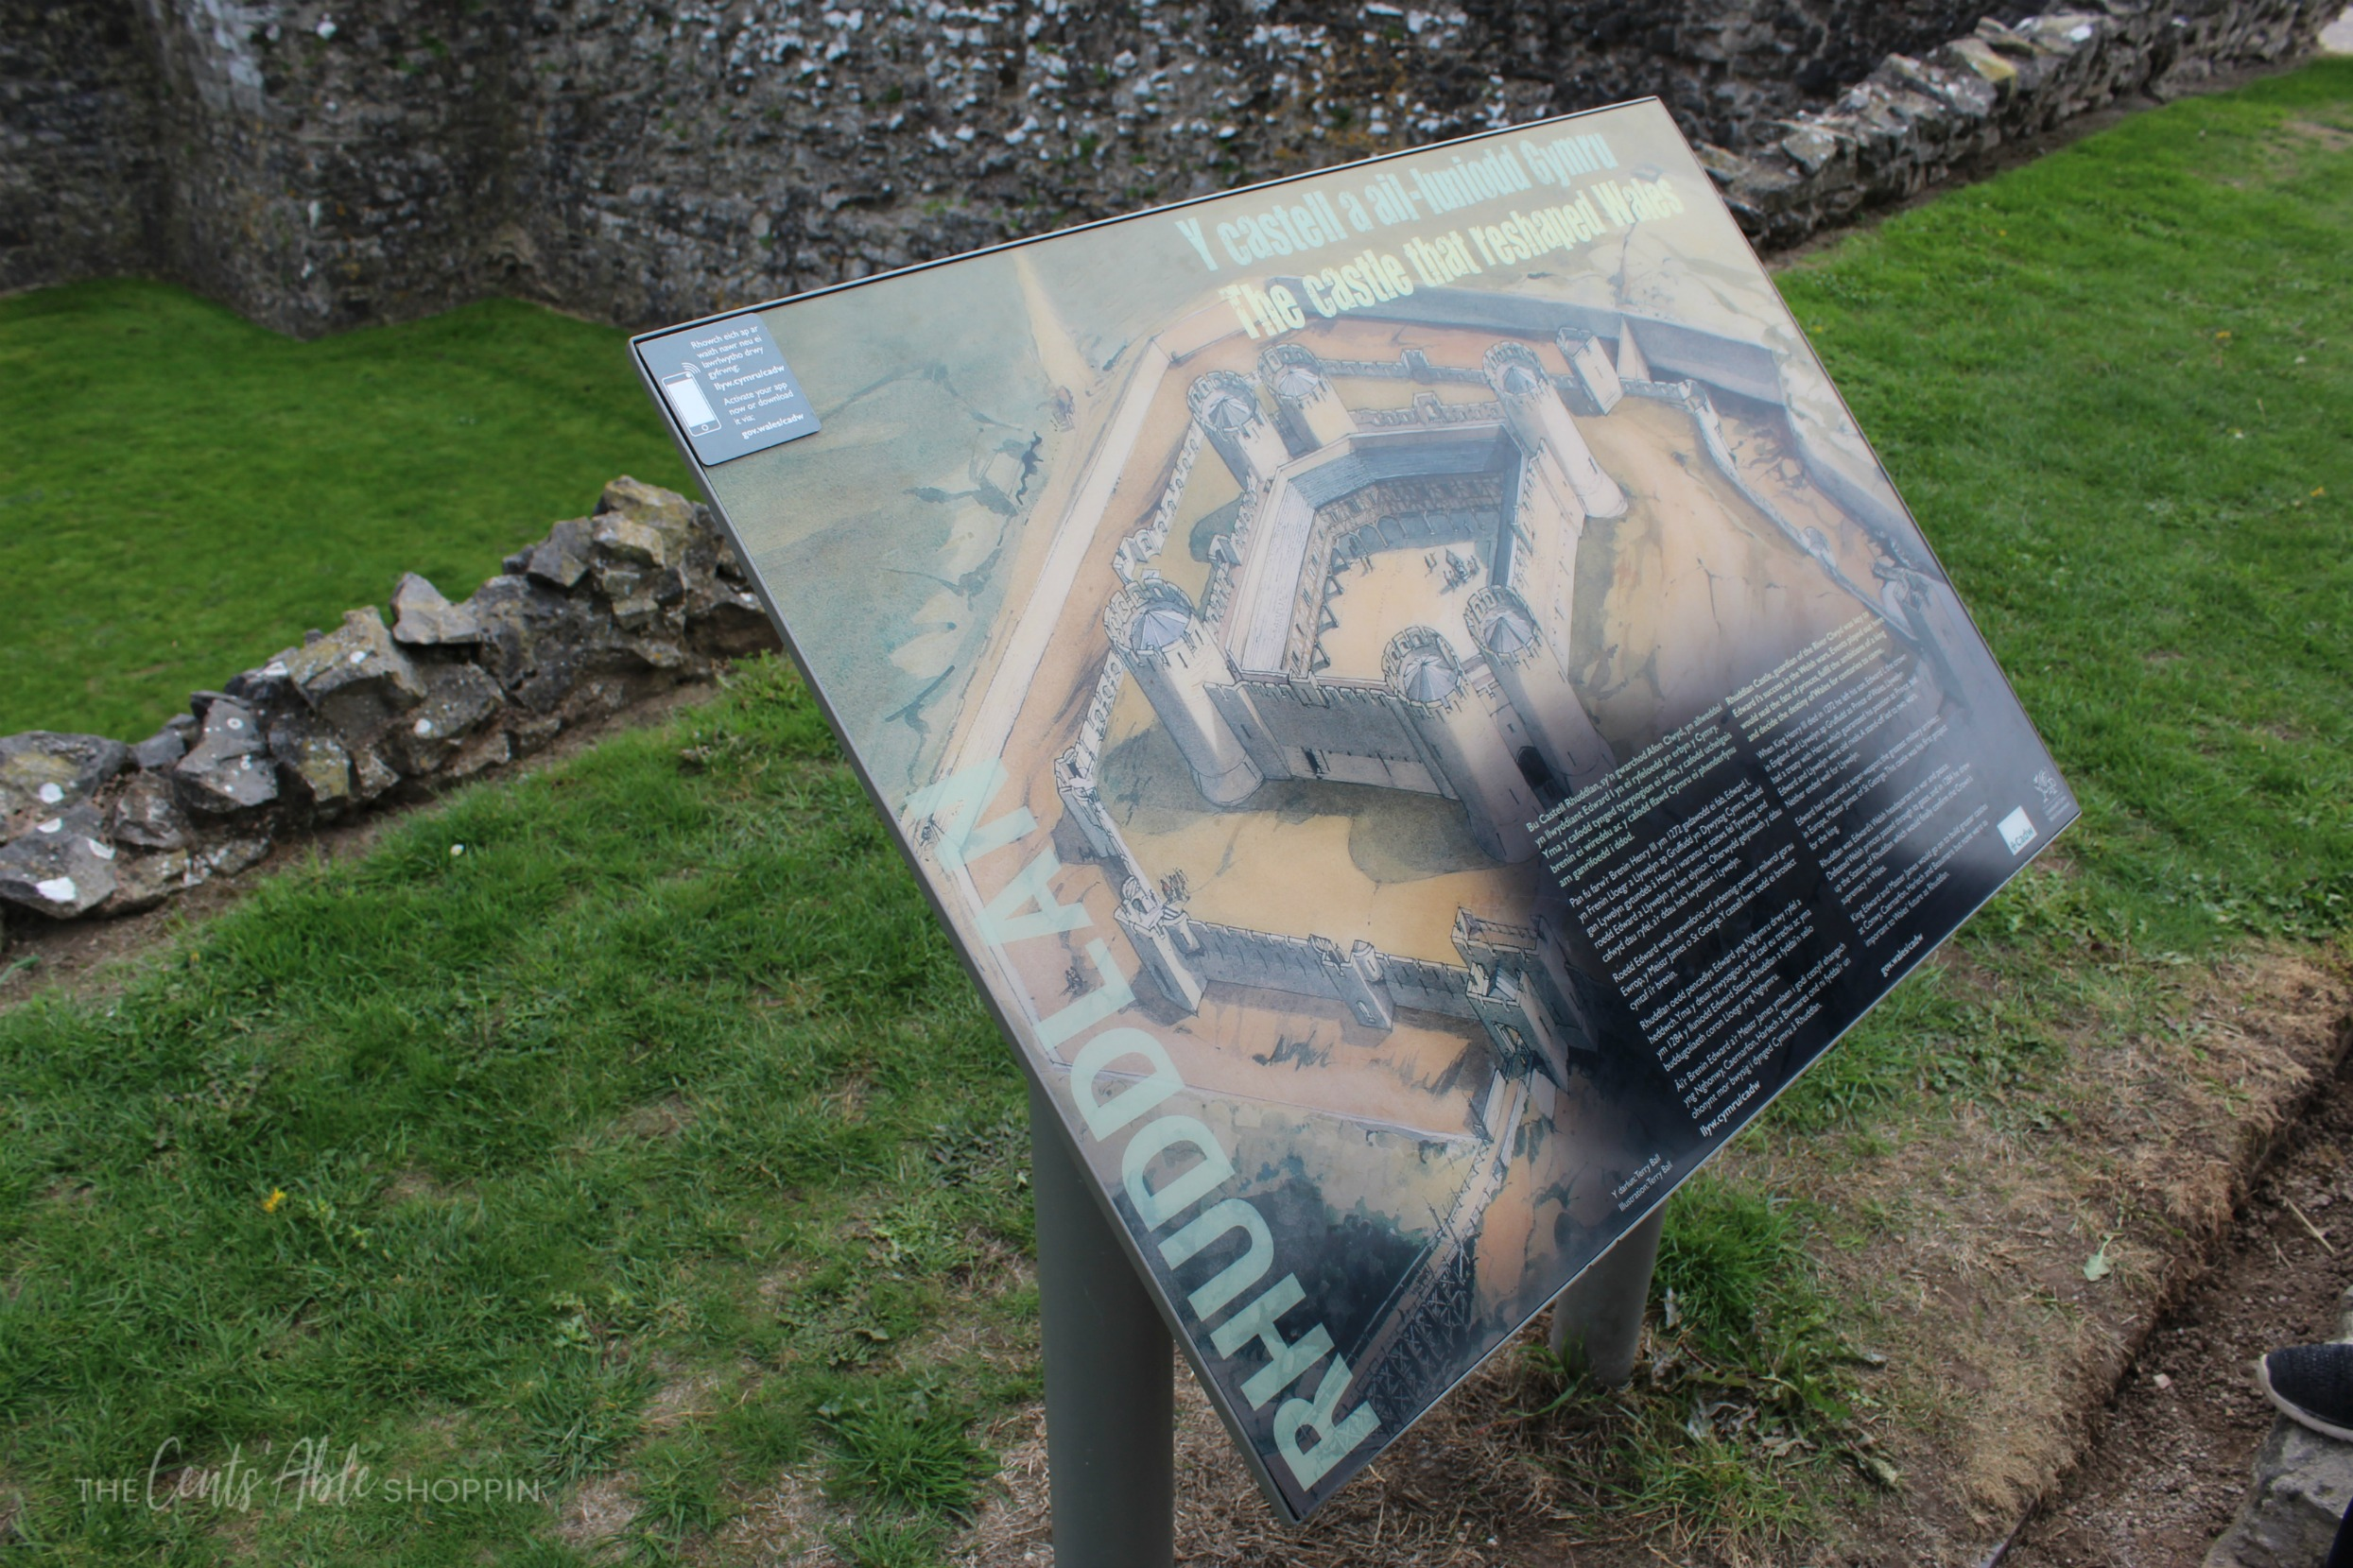 Informational Sign \\ Rhuddlan Castle is a castle located in Rhuddlan, Denbighshire, Wales. It was one of a series of castles erected by King Edward I in 1277.